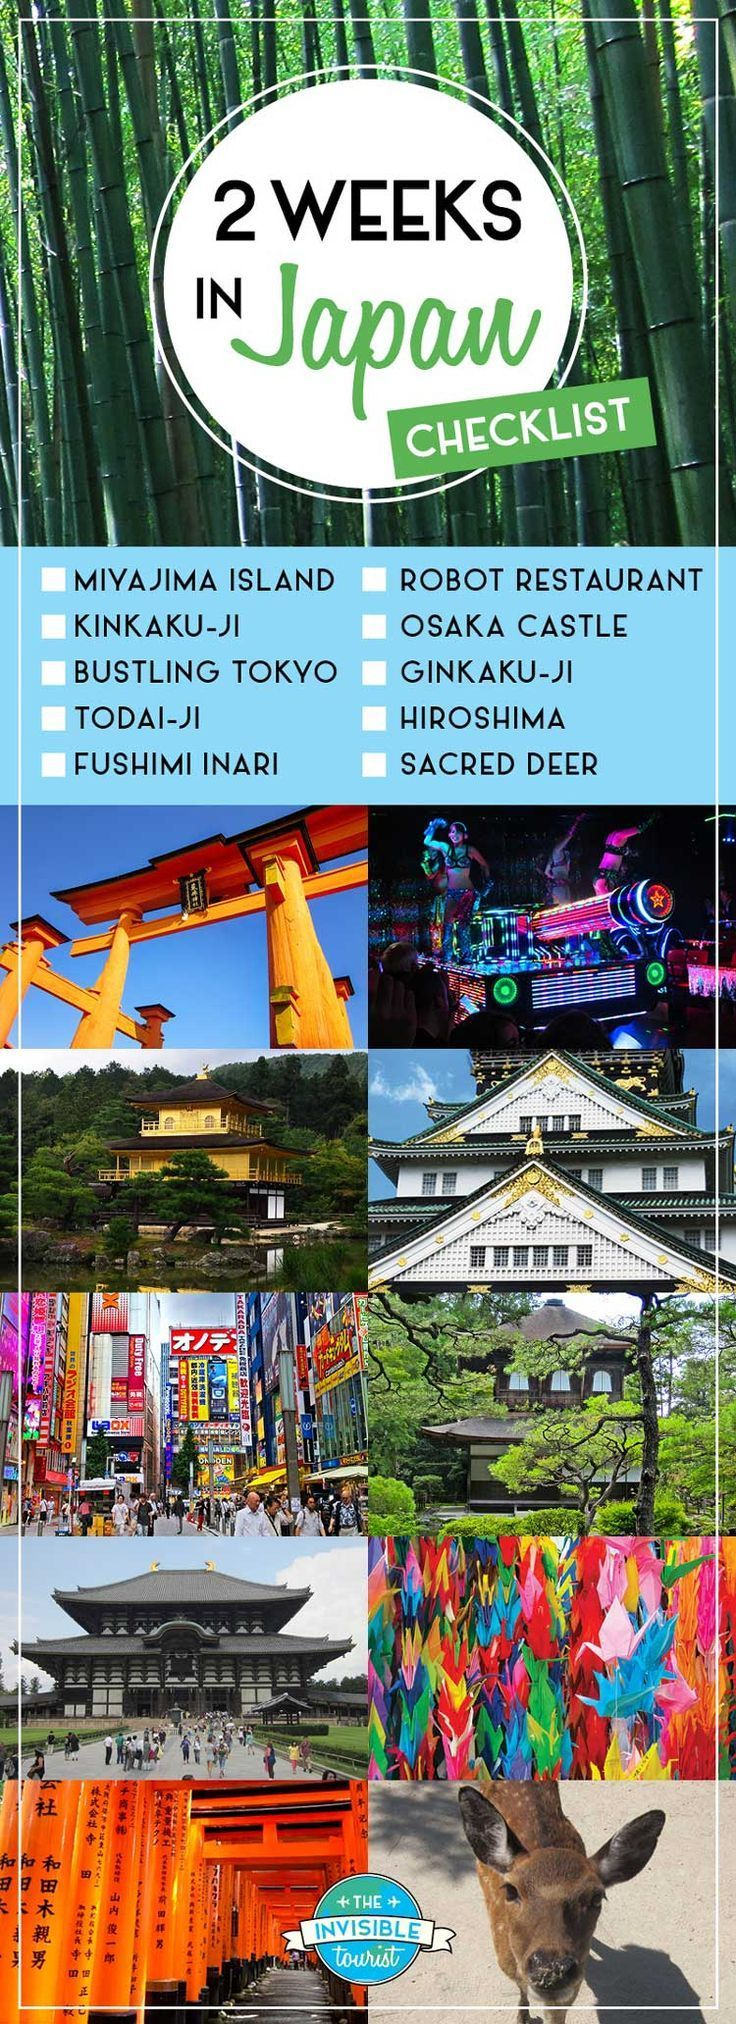 2 Weeks in Japan Itinerary: 2019 Complete Guide for First-Timers #middleeast